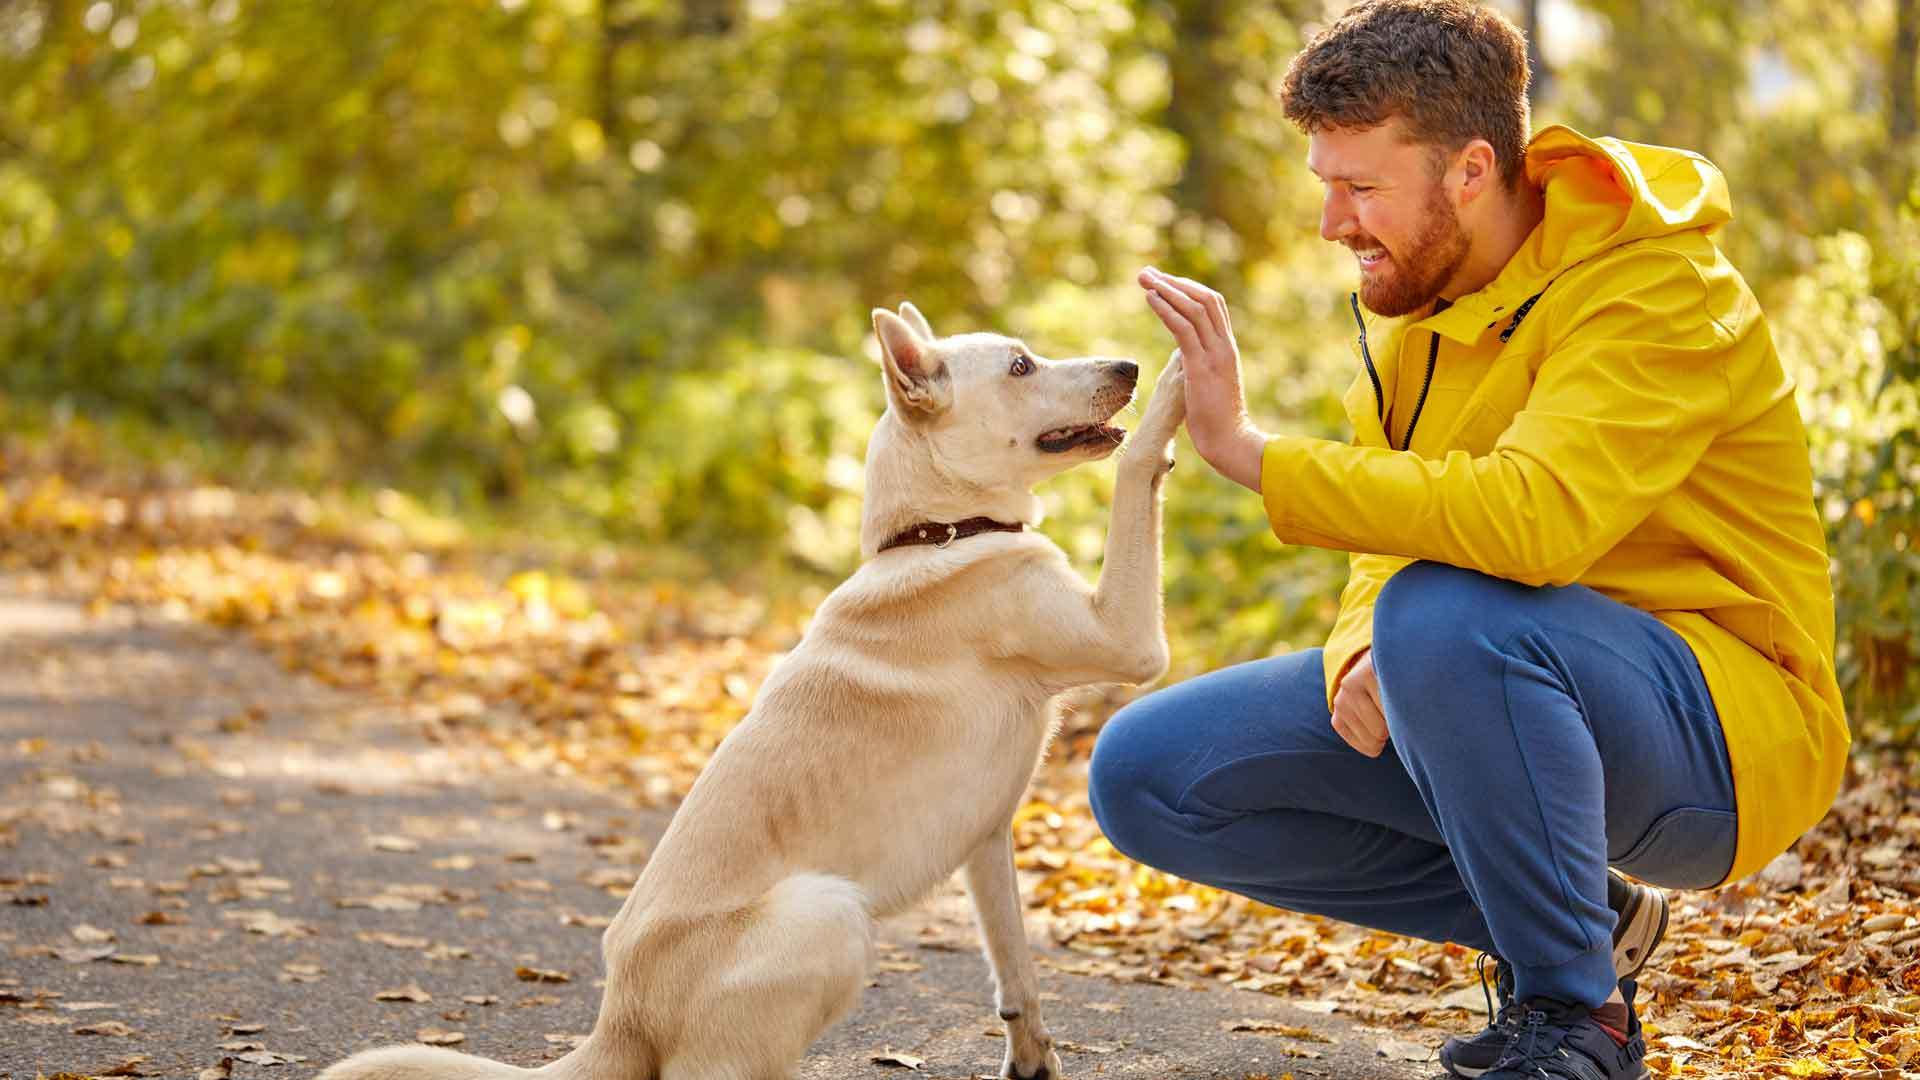 Tips-for-Taking-Care-of-Your-Dog-on-99insight